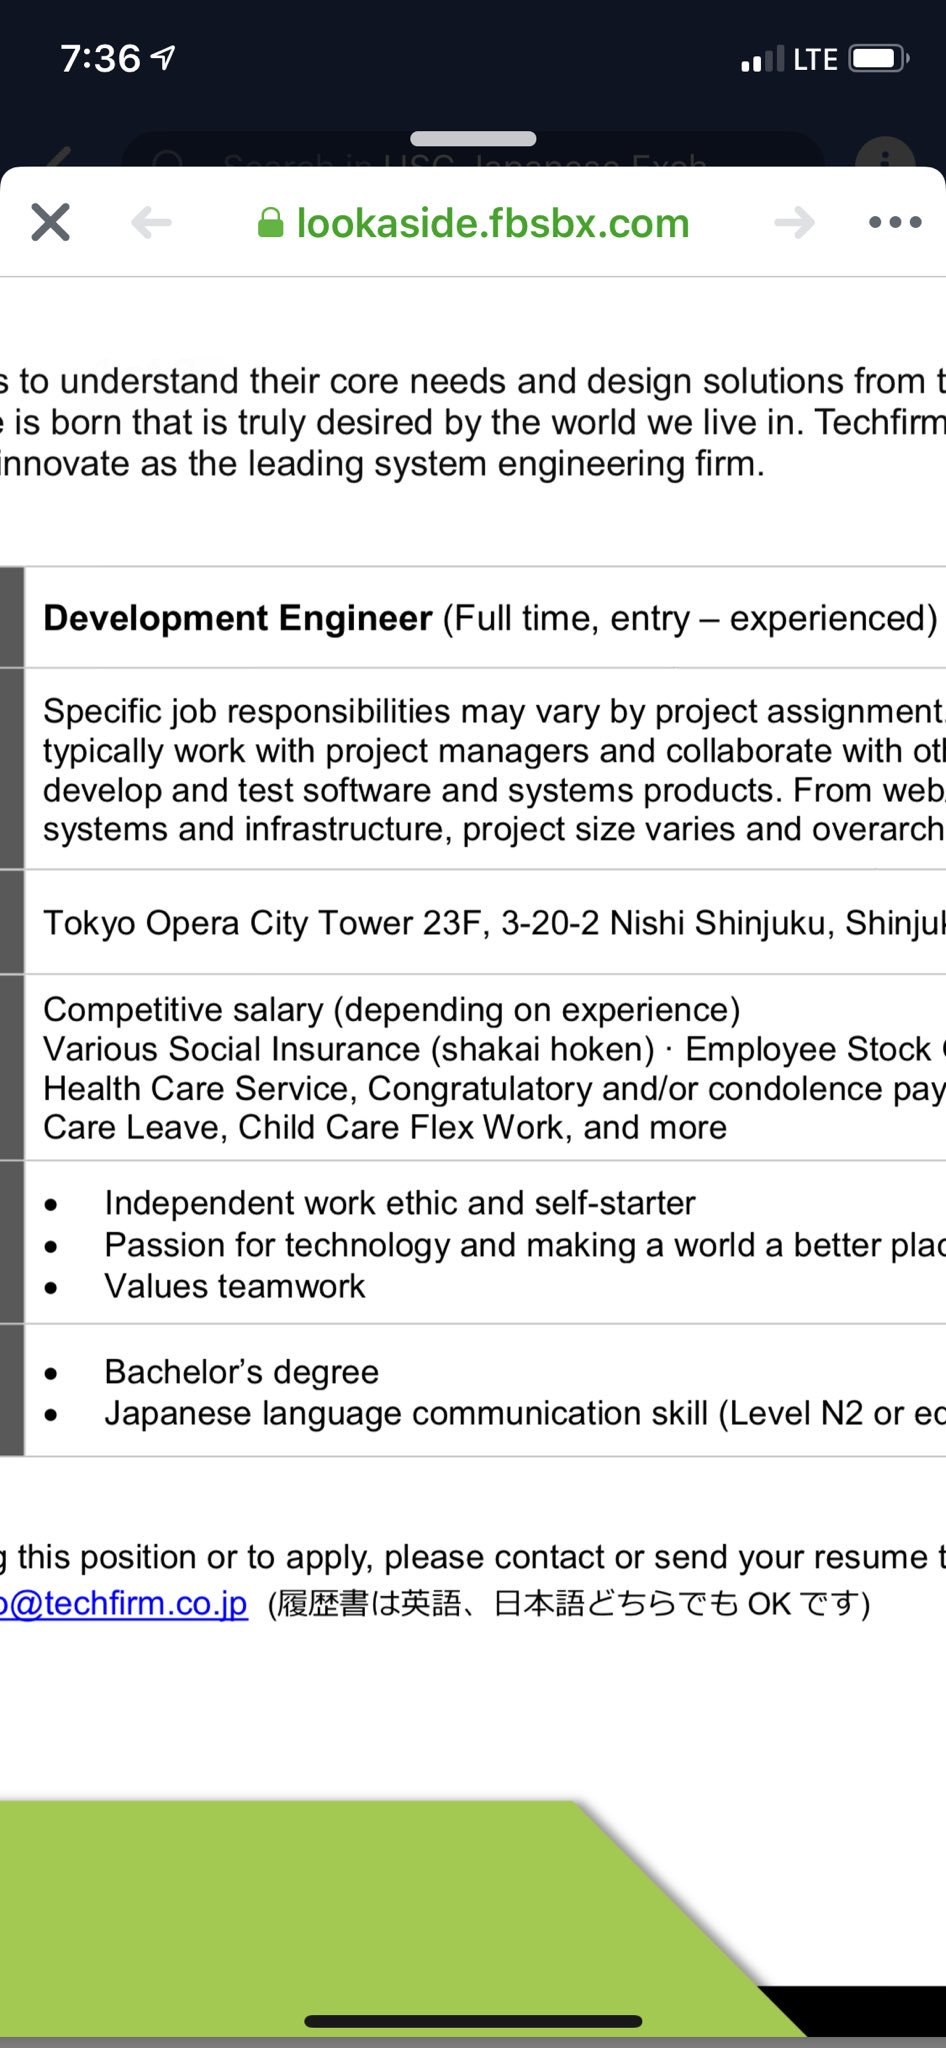 Mush On Twitter A Friend Of Mine Living In Japan Linked A Job Posting In A Student Club S Page Took A Look Out Of Curiosity And Thats Some Damn Competitive Salary Https T Co Nml4bzxnh7